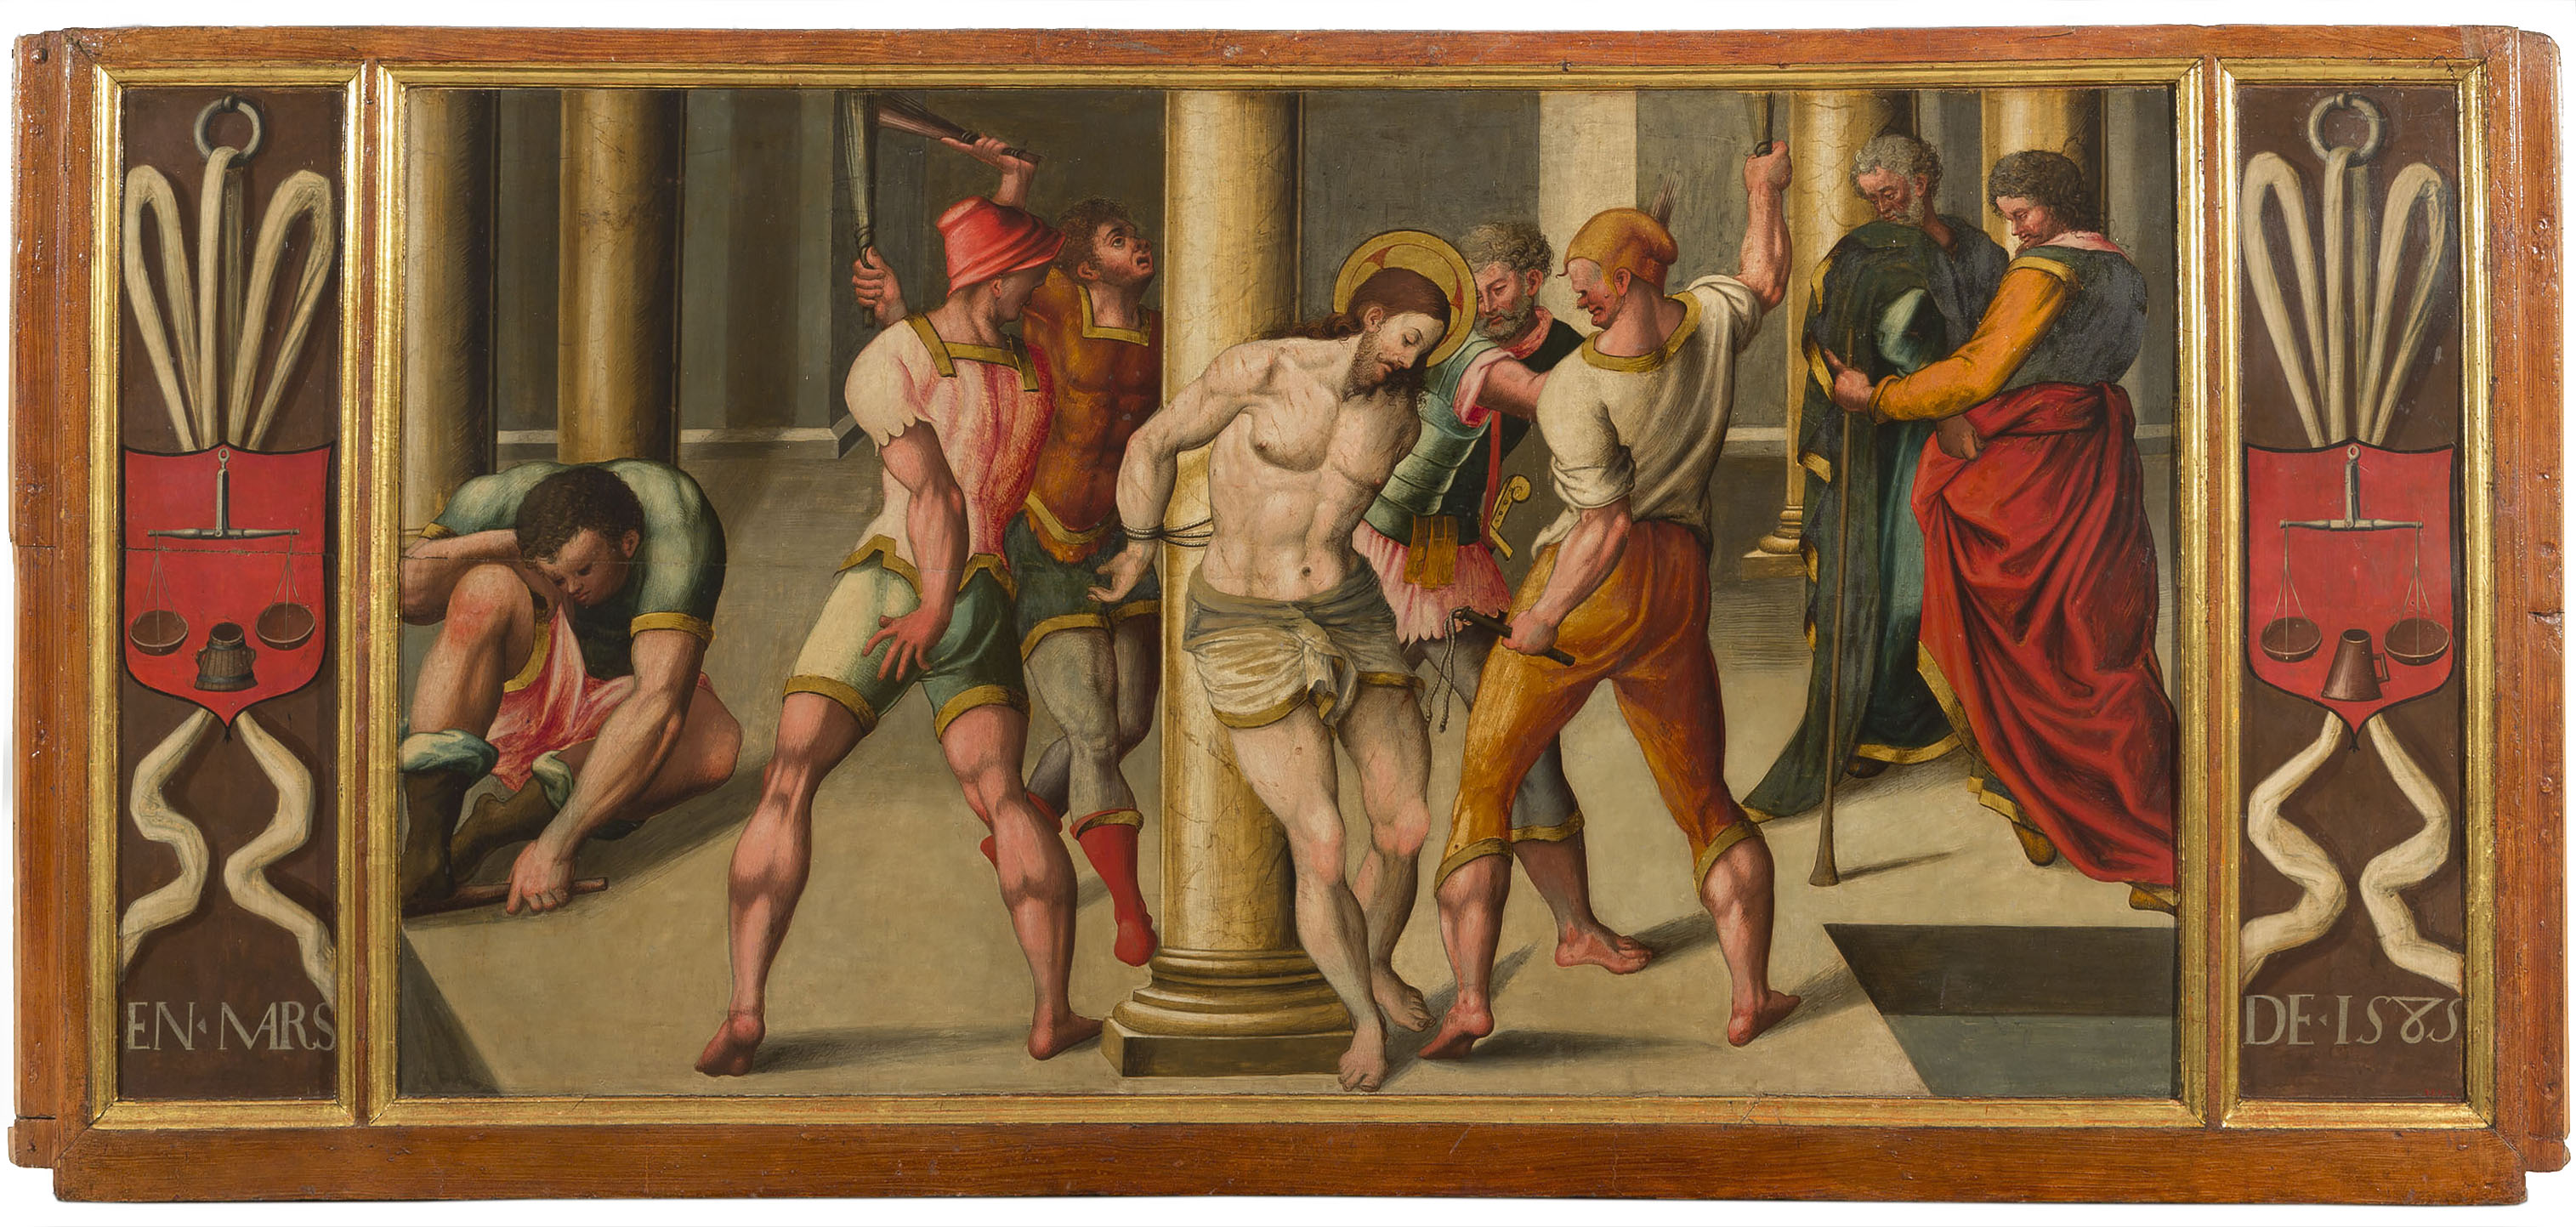 Anonymous. The Flagellation of Christ, 1585